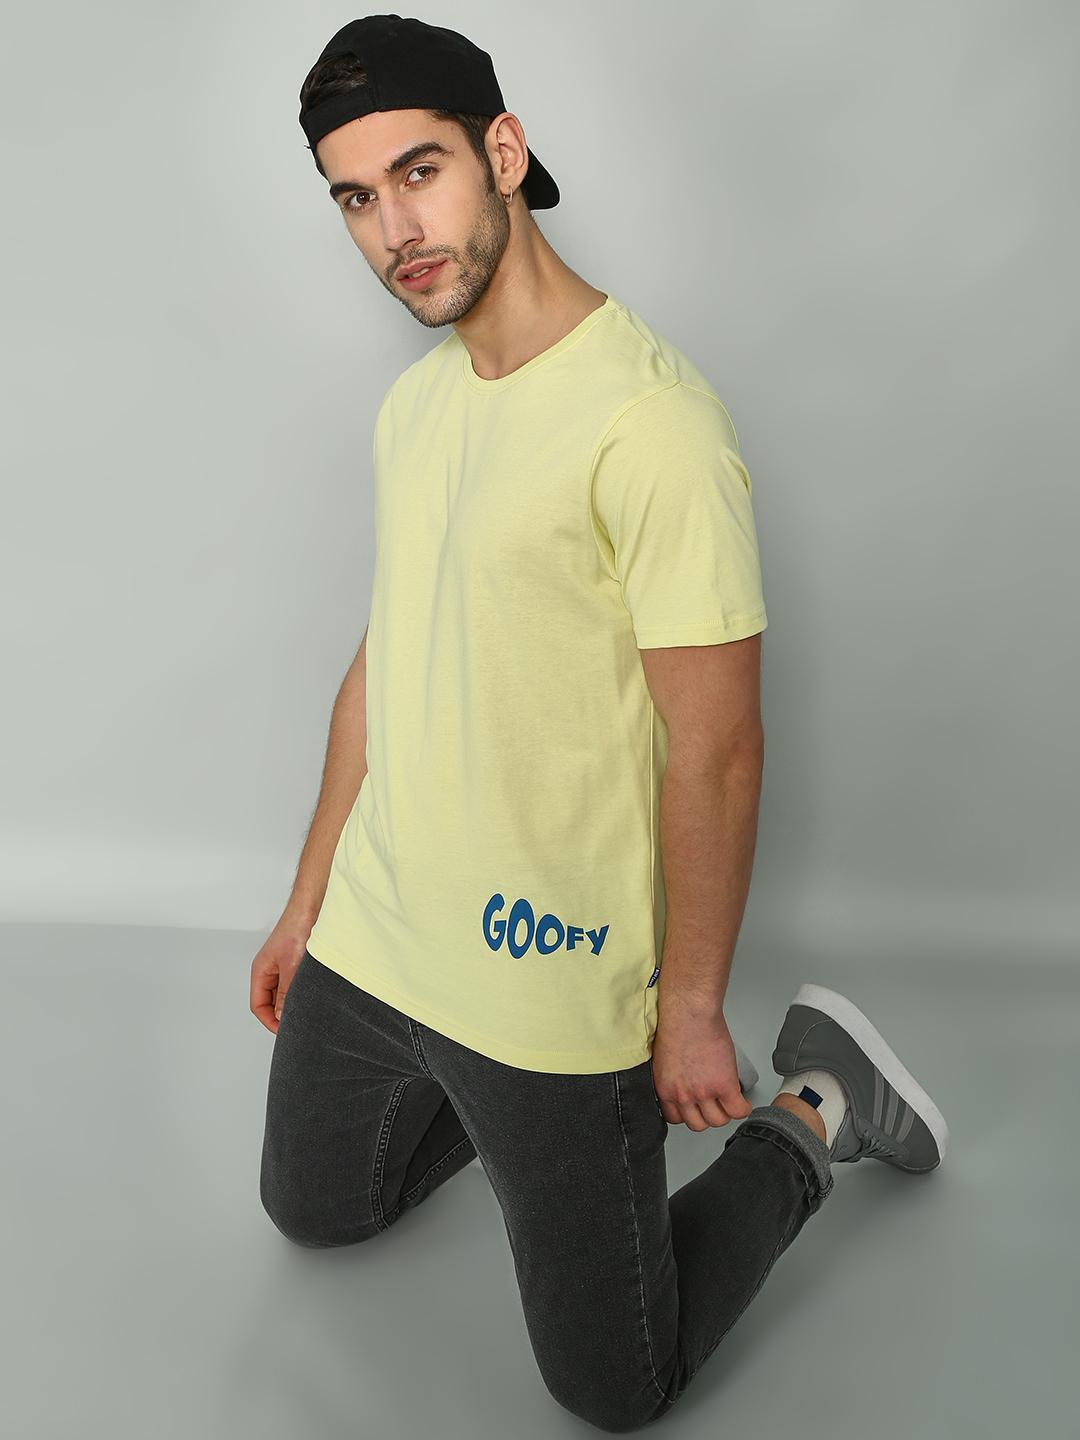 Blue Saint Yellow Plain Round Neck T-shirts 1